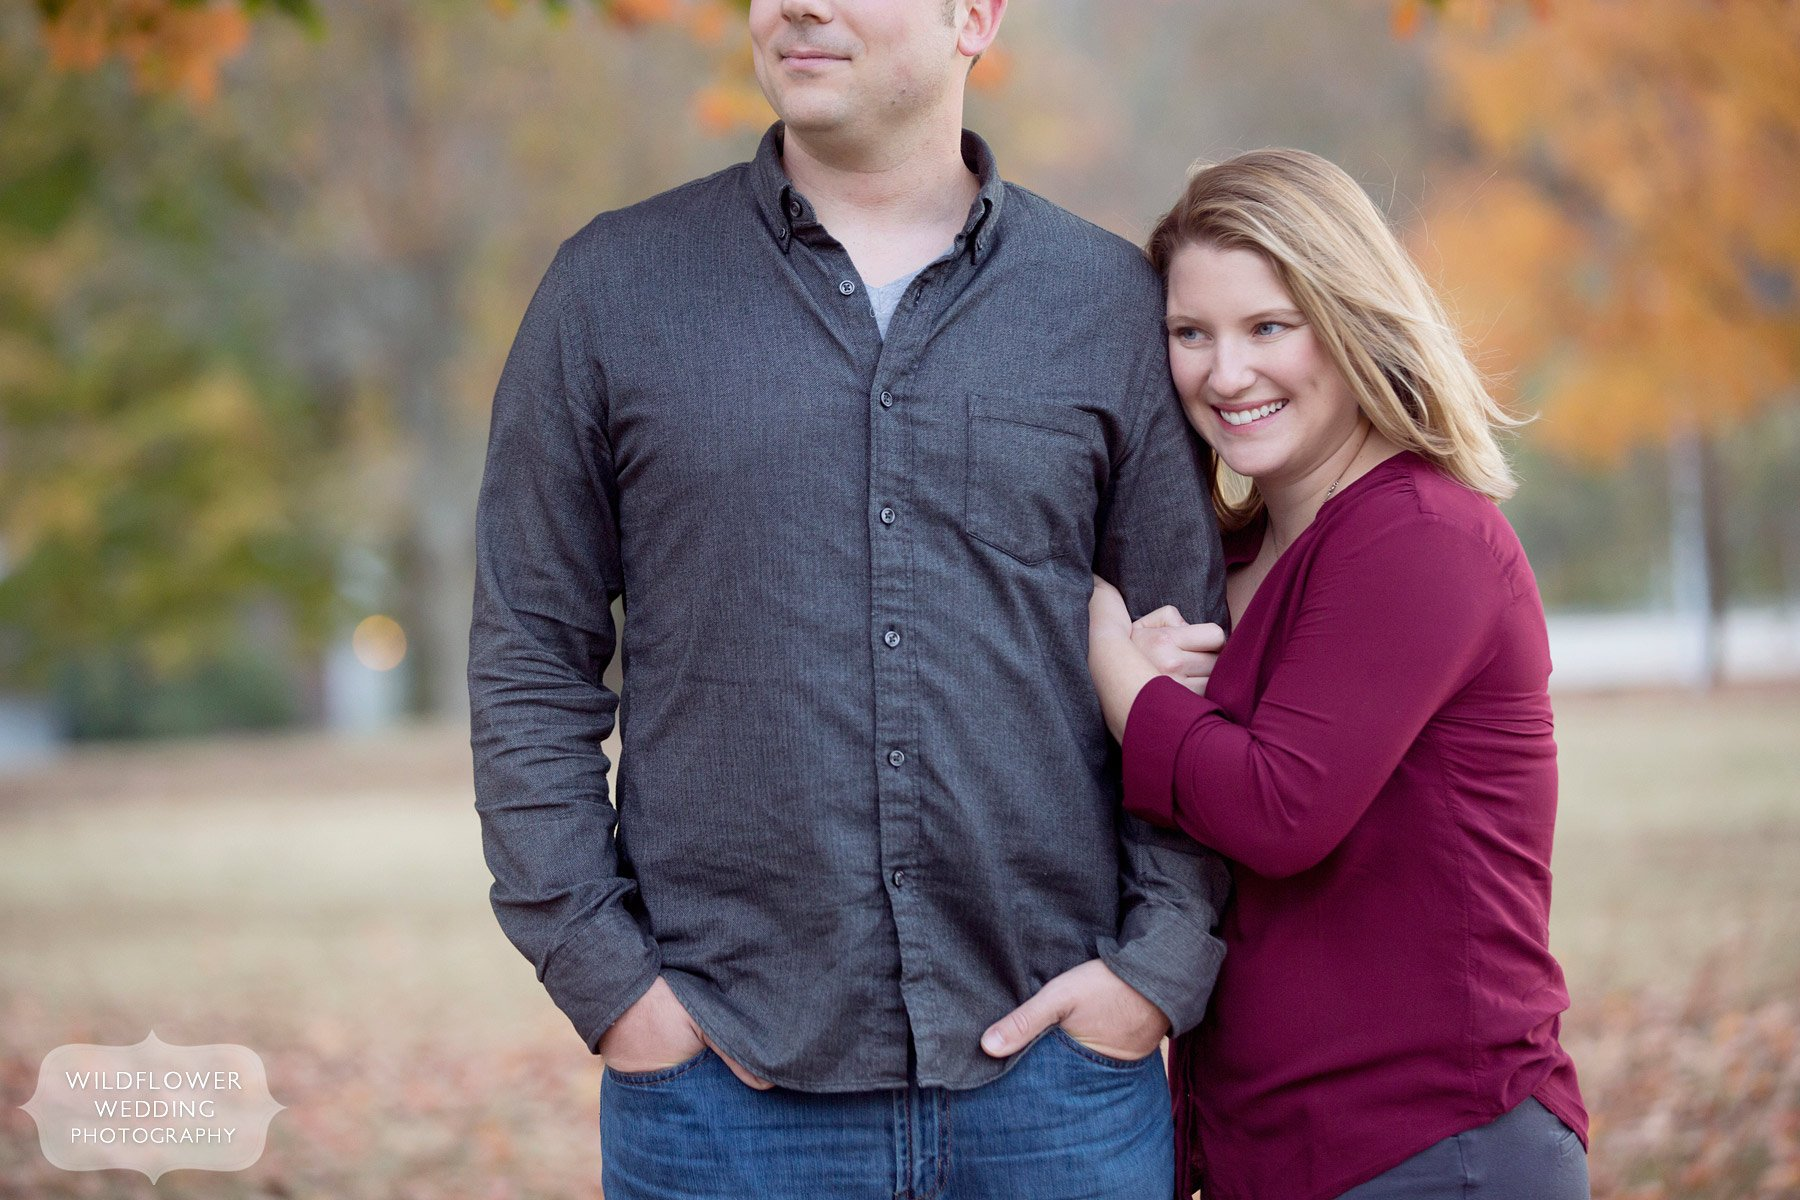 Journalistic engagement photography in Columbia, MO at Stephen's Lake. This was from an outdoor session in October.